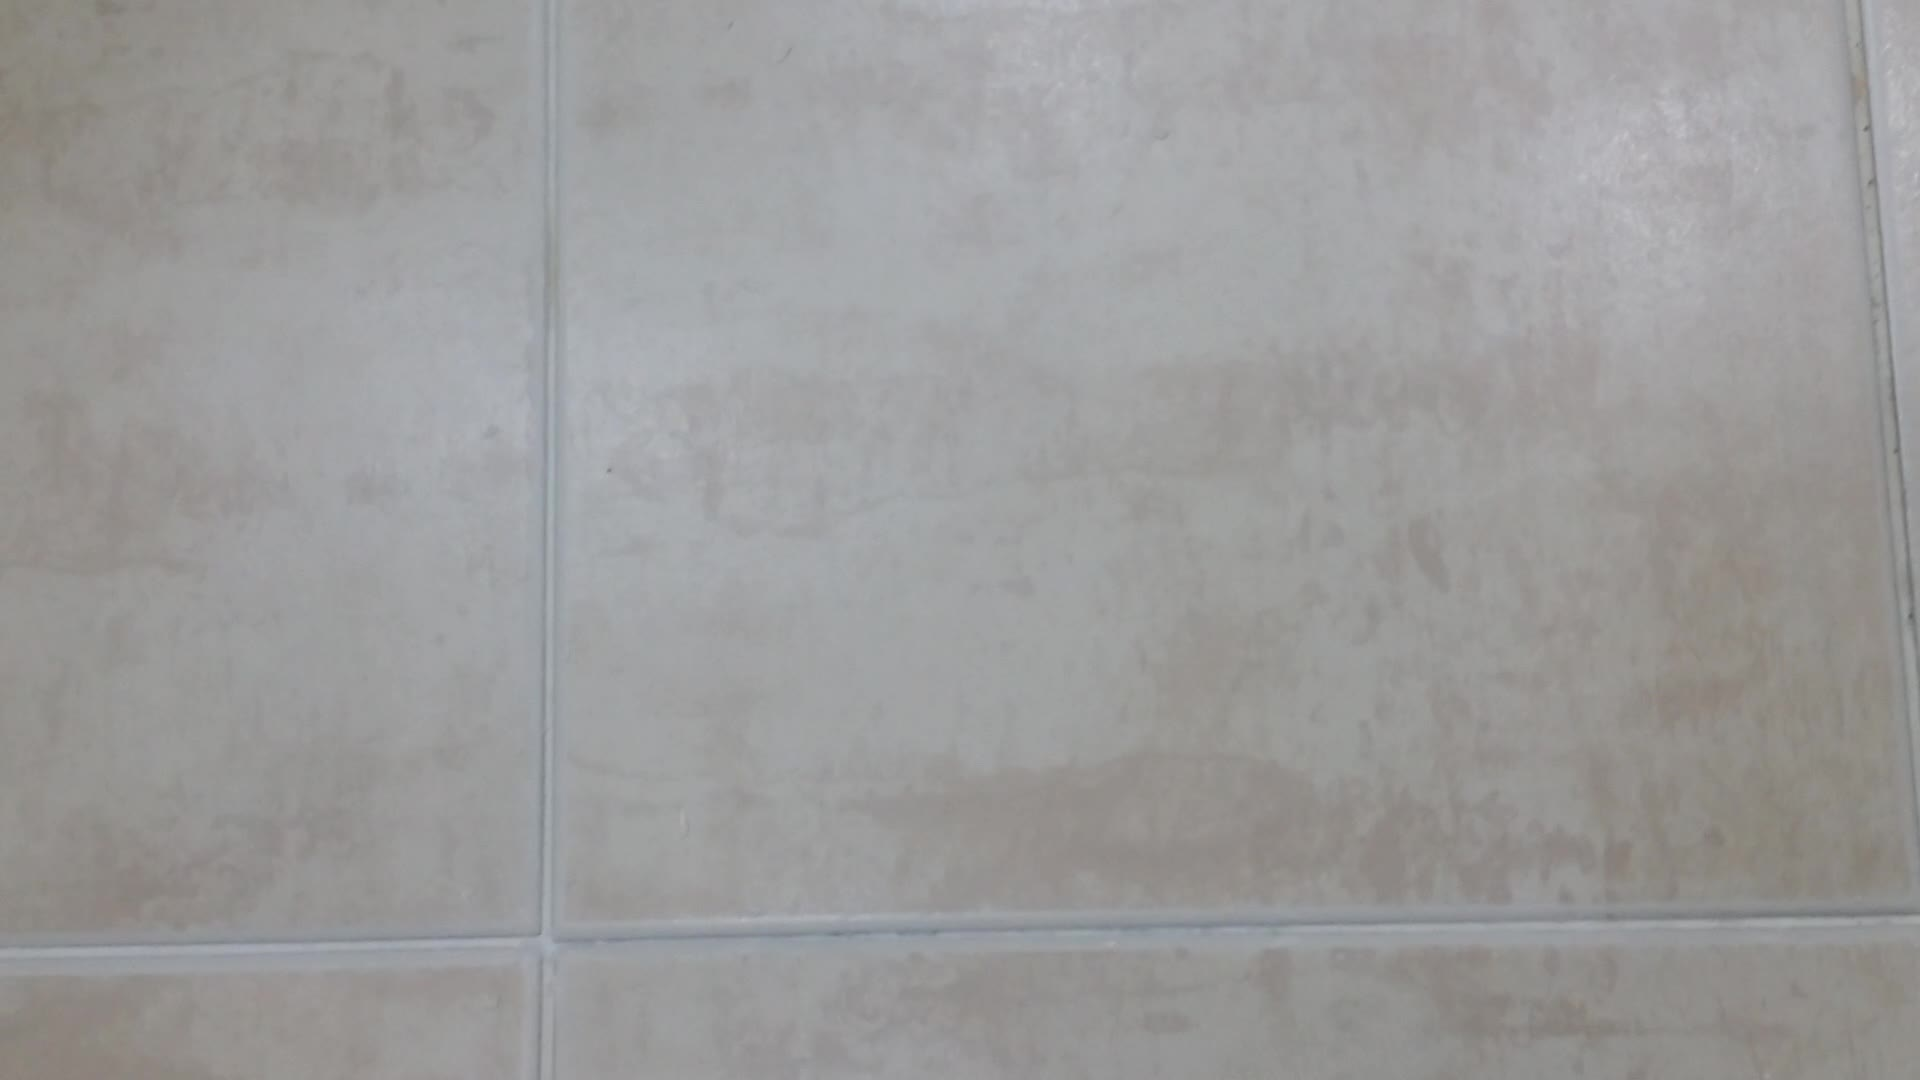 tile royalty tiles bathroom stock with toilet walls clean free light floor cleaning images new and on image apartment